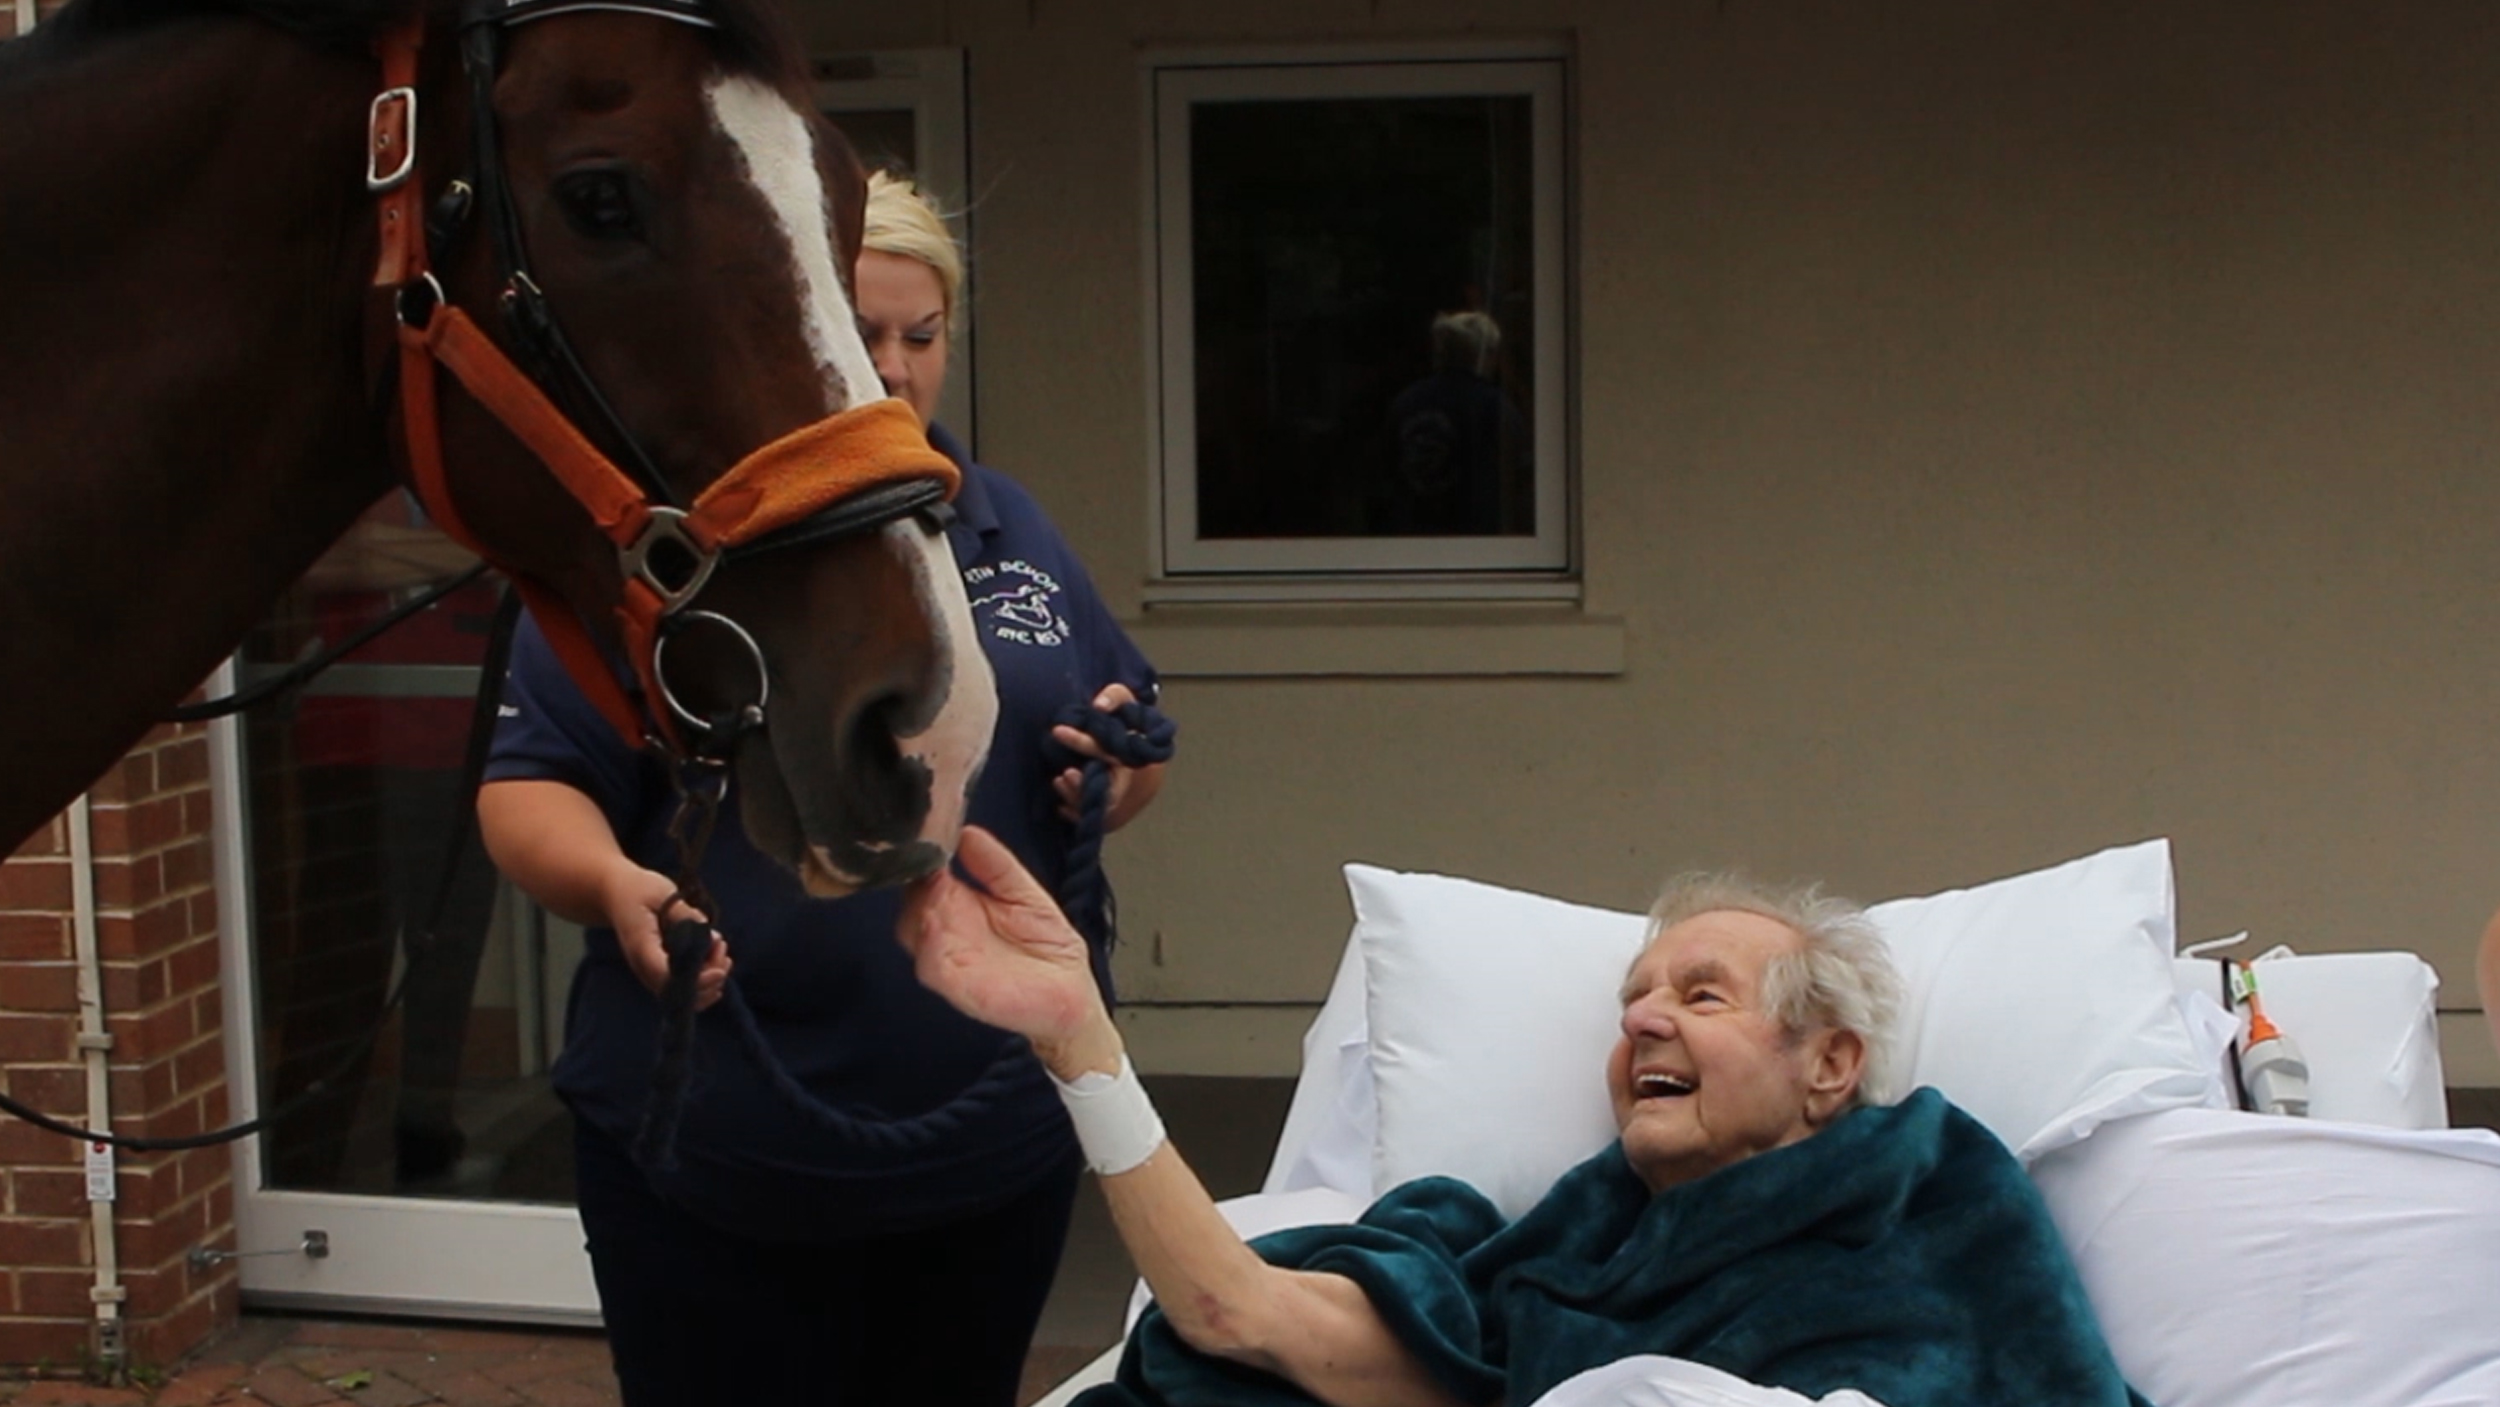 Family brings horse to dying man's bedside in sweet surprise